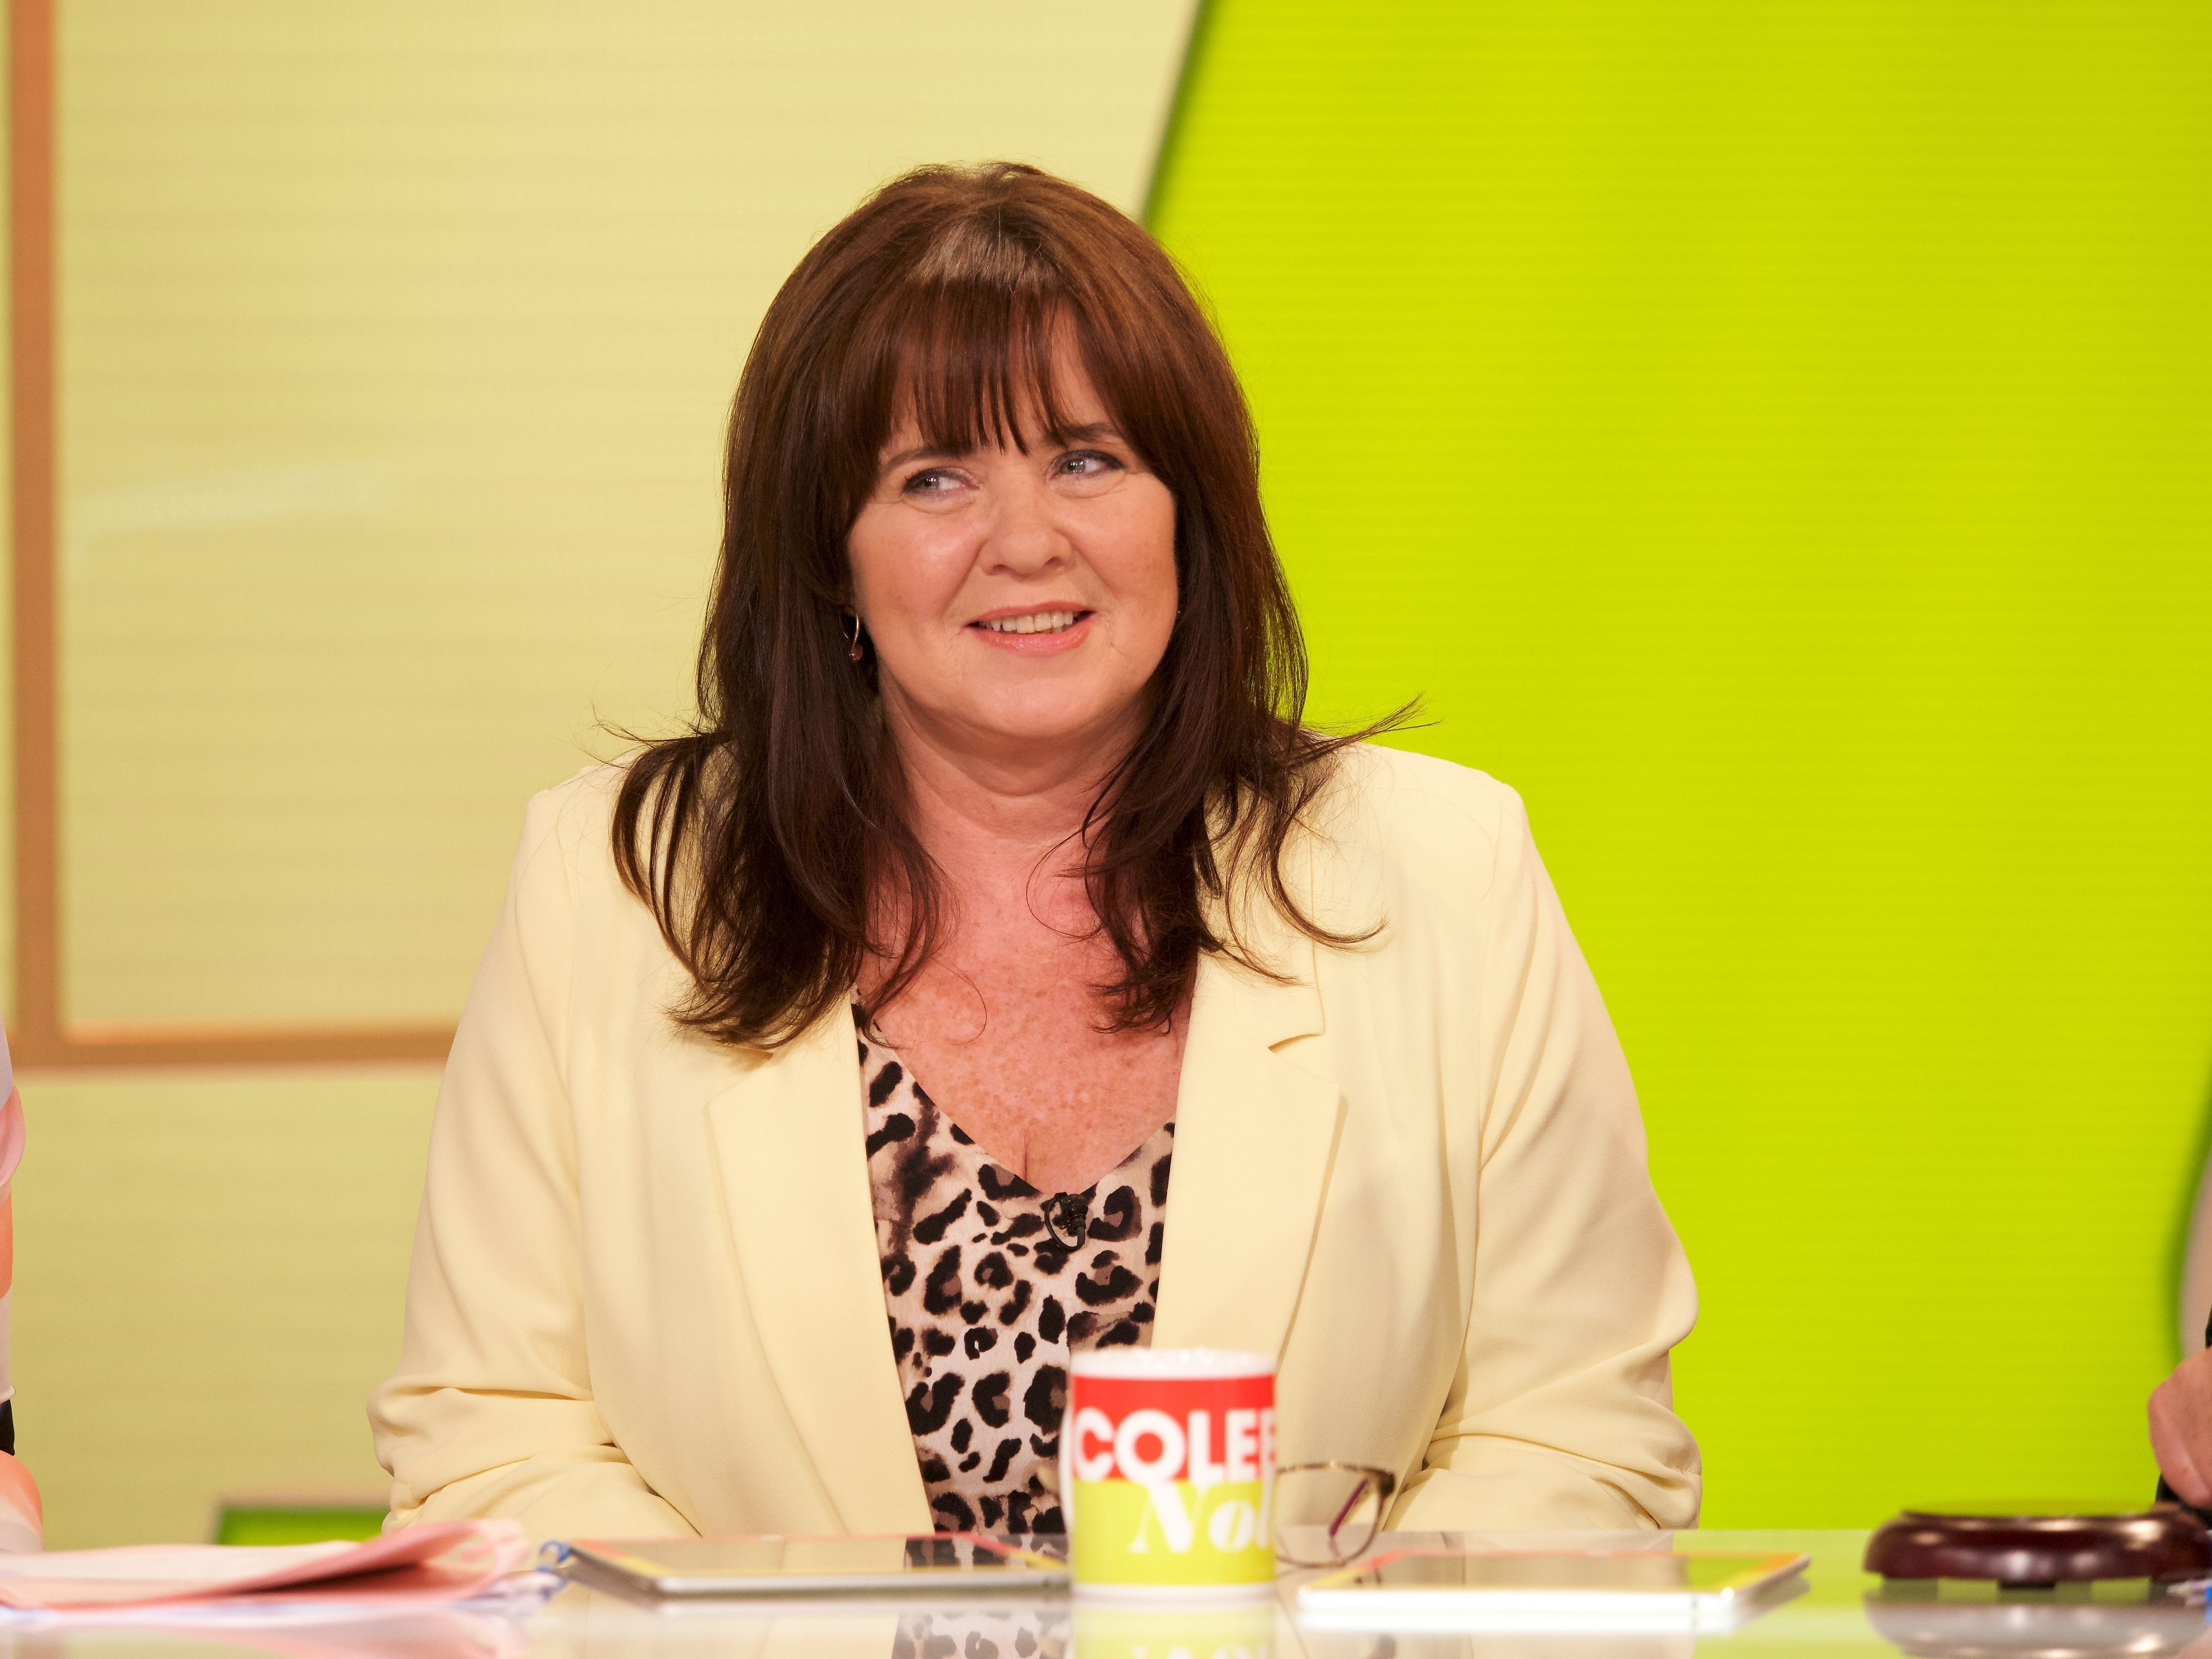 Coleen Nolan Delays 'Loose Women' Return, Following Tearful 'This Morning' Interview